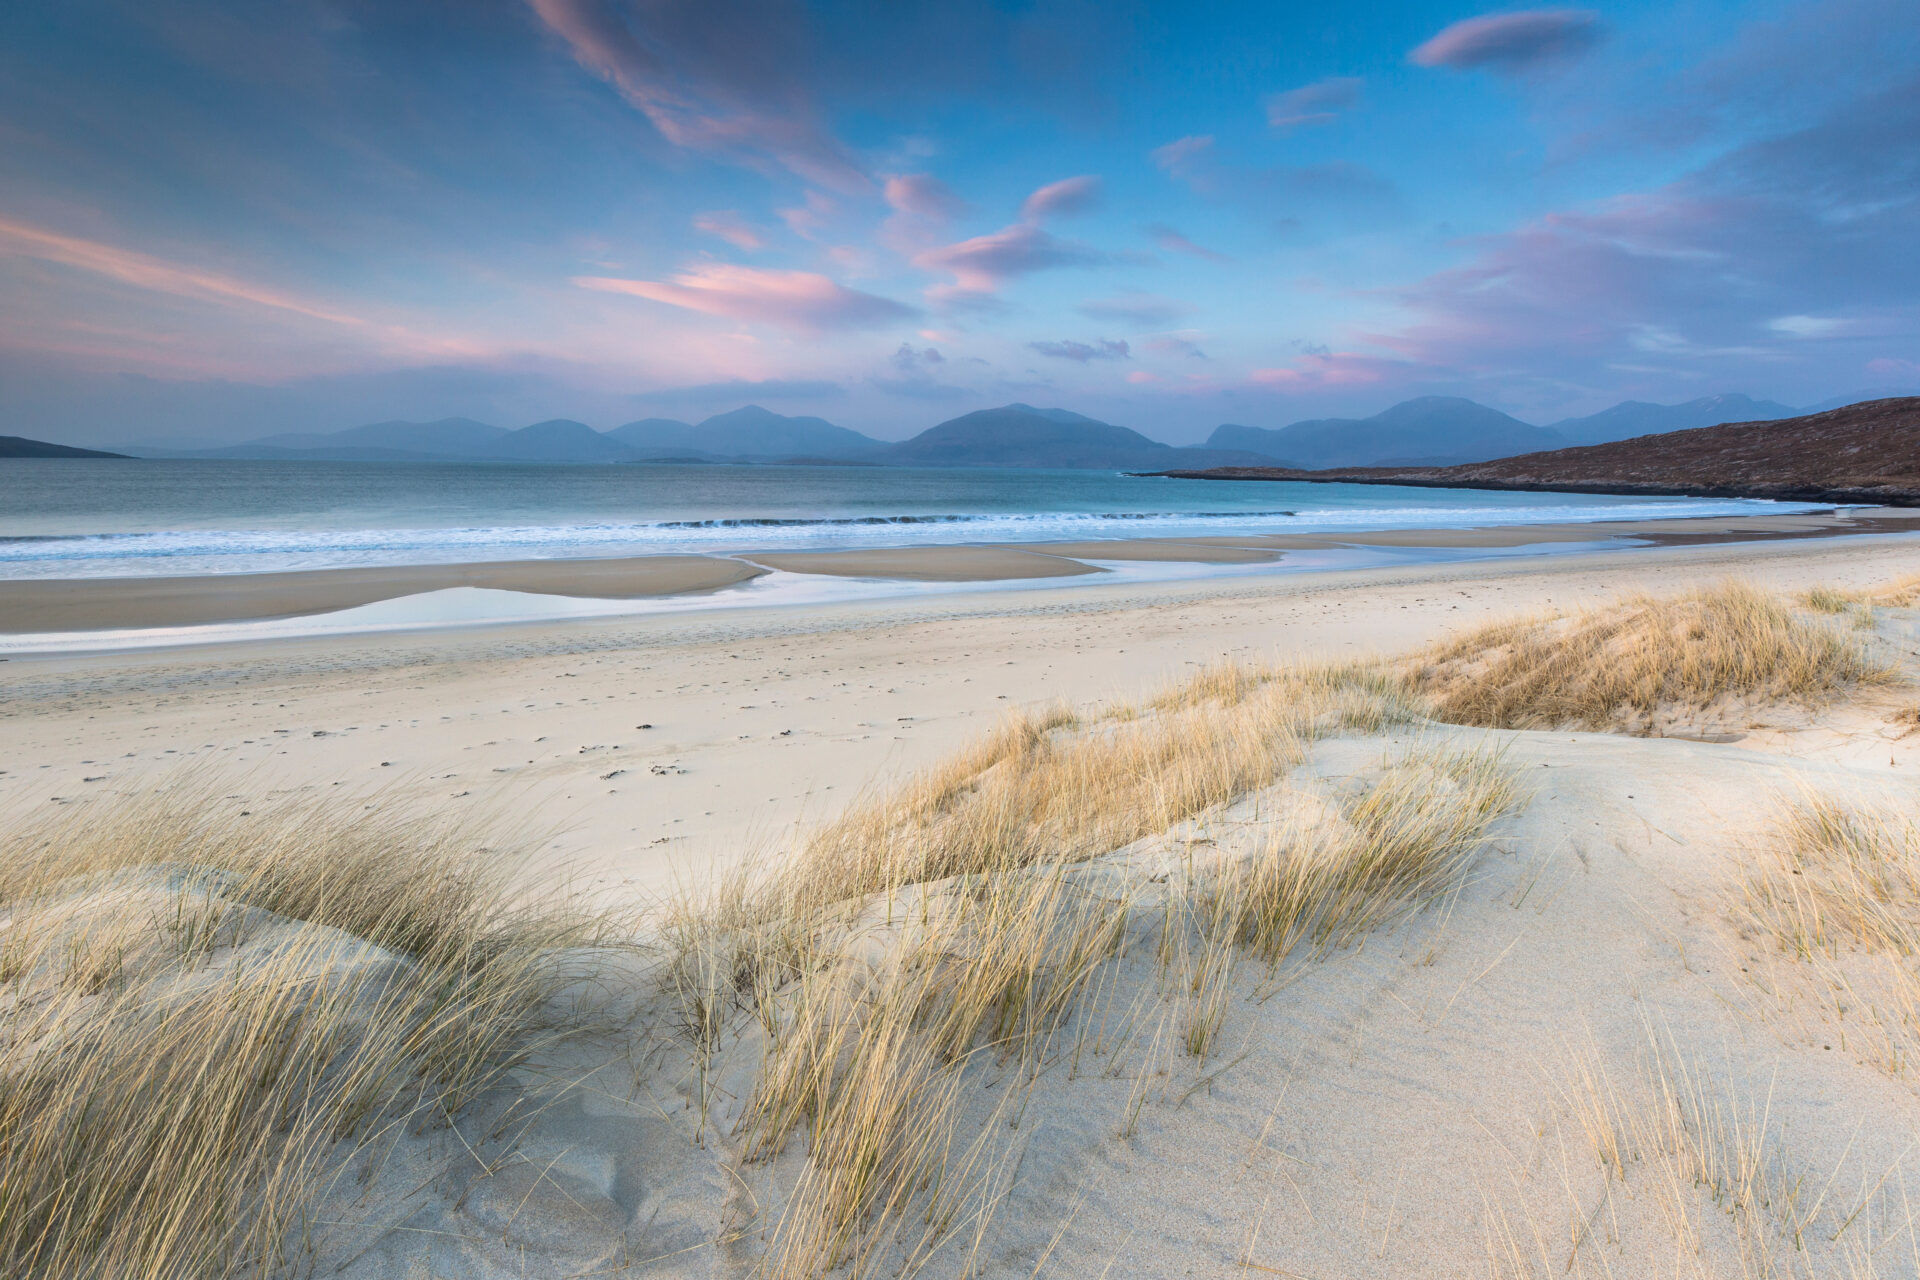 Luskentyre Beach in Scotland